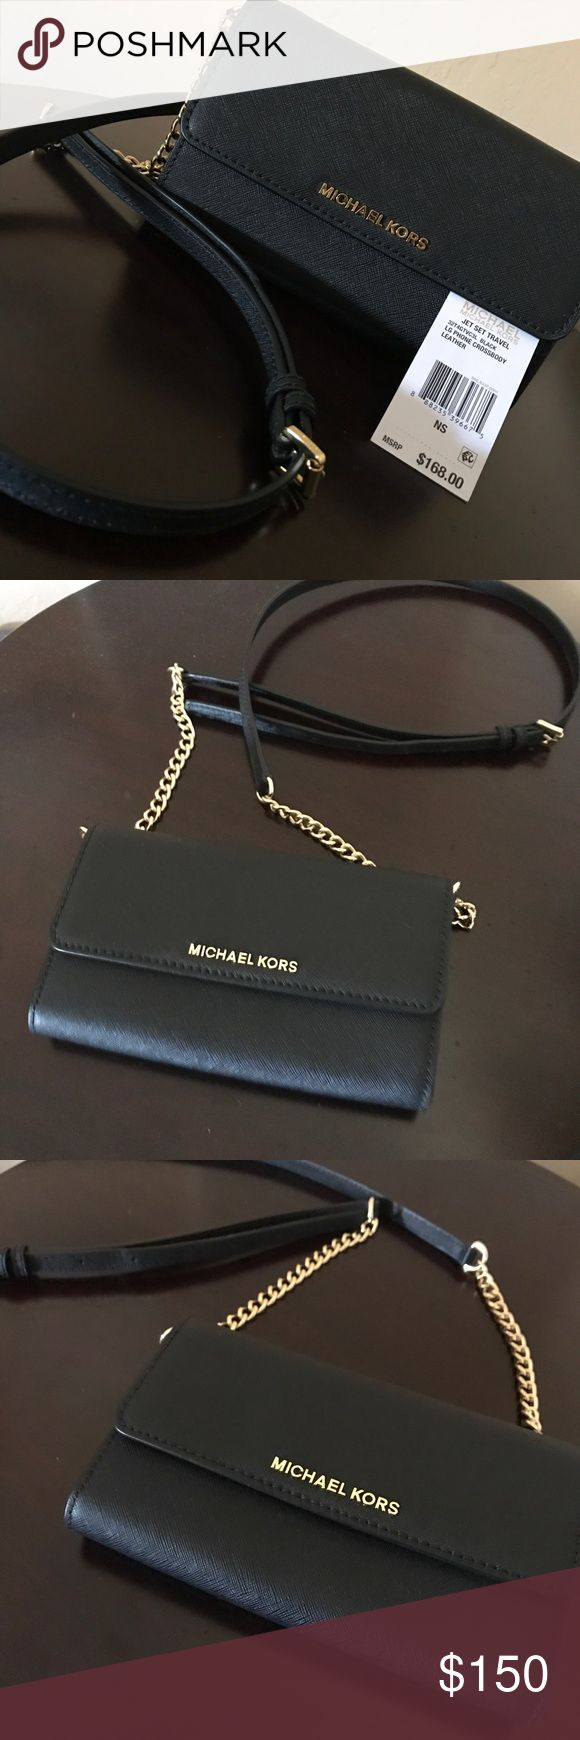 Michael Kors Crossbody Beautiful Michael Kors Saffiano Leather Crossbody, never been used, cell phone pocket, 5 card slot, adjustable cross body strap, in mint condition, comes with dust bag!! Beautiful bag for a nice price!! 😊👏🏼👌🏼🤗😉😘👜 Michael Kors Bags Crossbody Bags